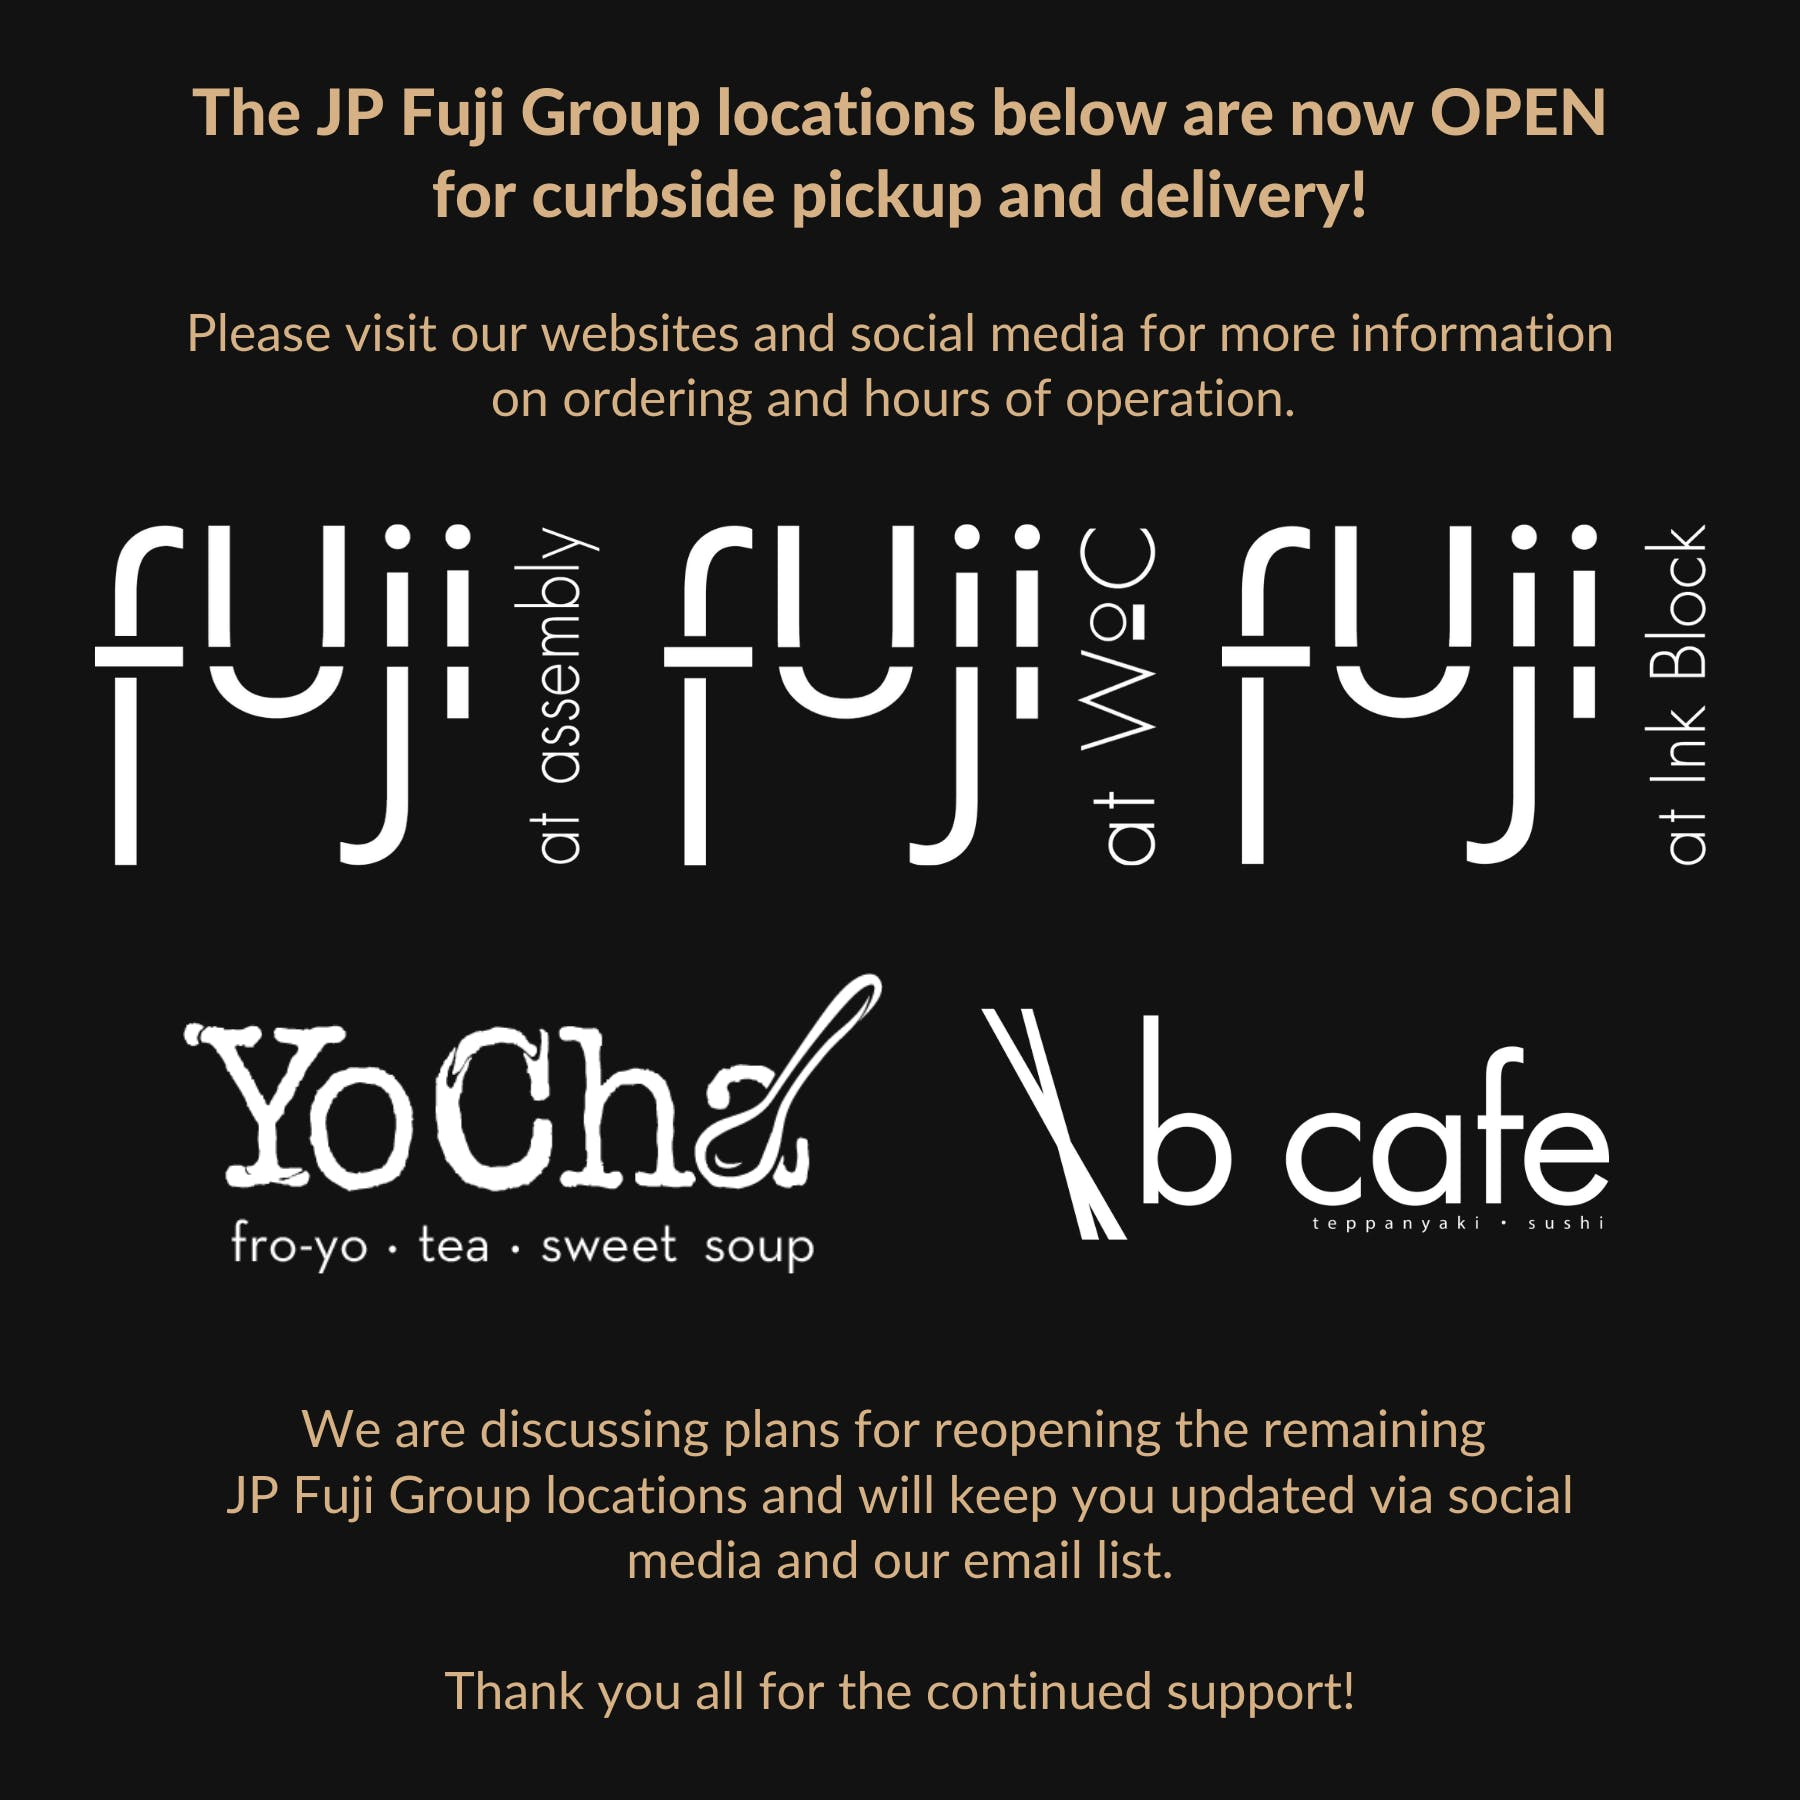 Fuji at Woc, B Cafe, Fuji at Ink Block, Fuji at Assembly, and YoCha are now OPEN for curbside pickup and delivery!